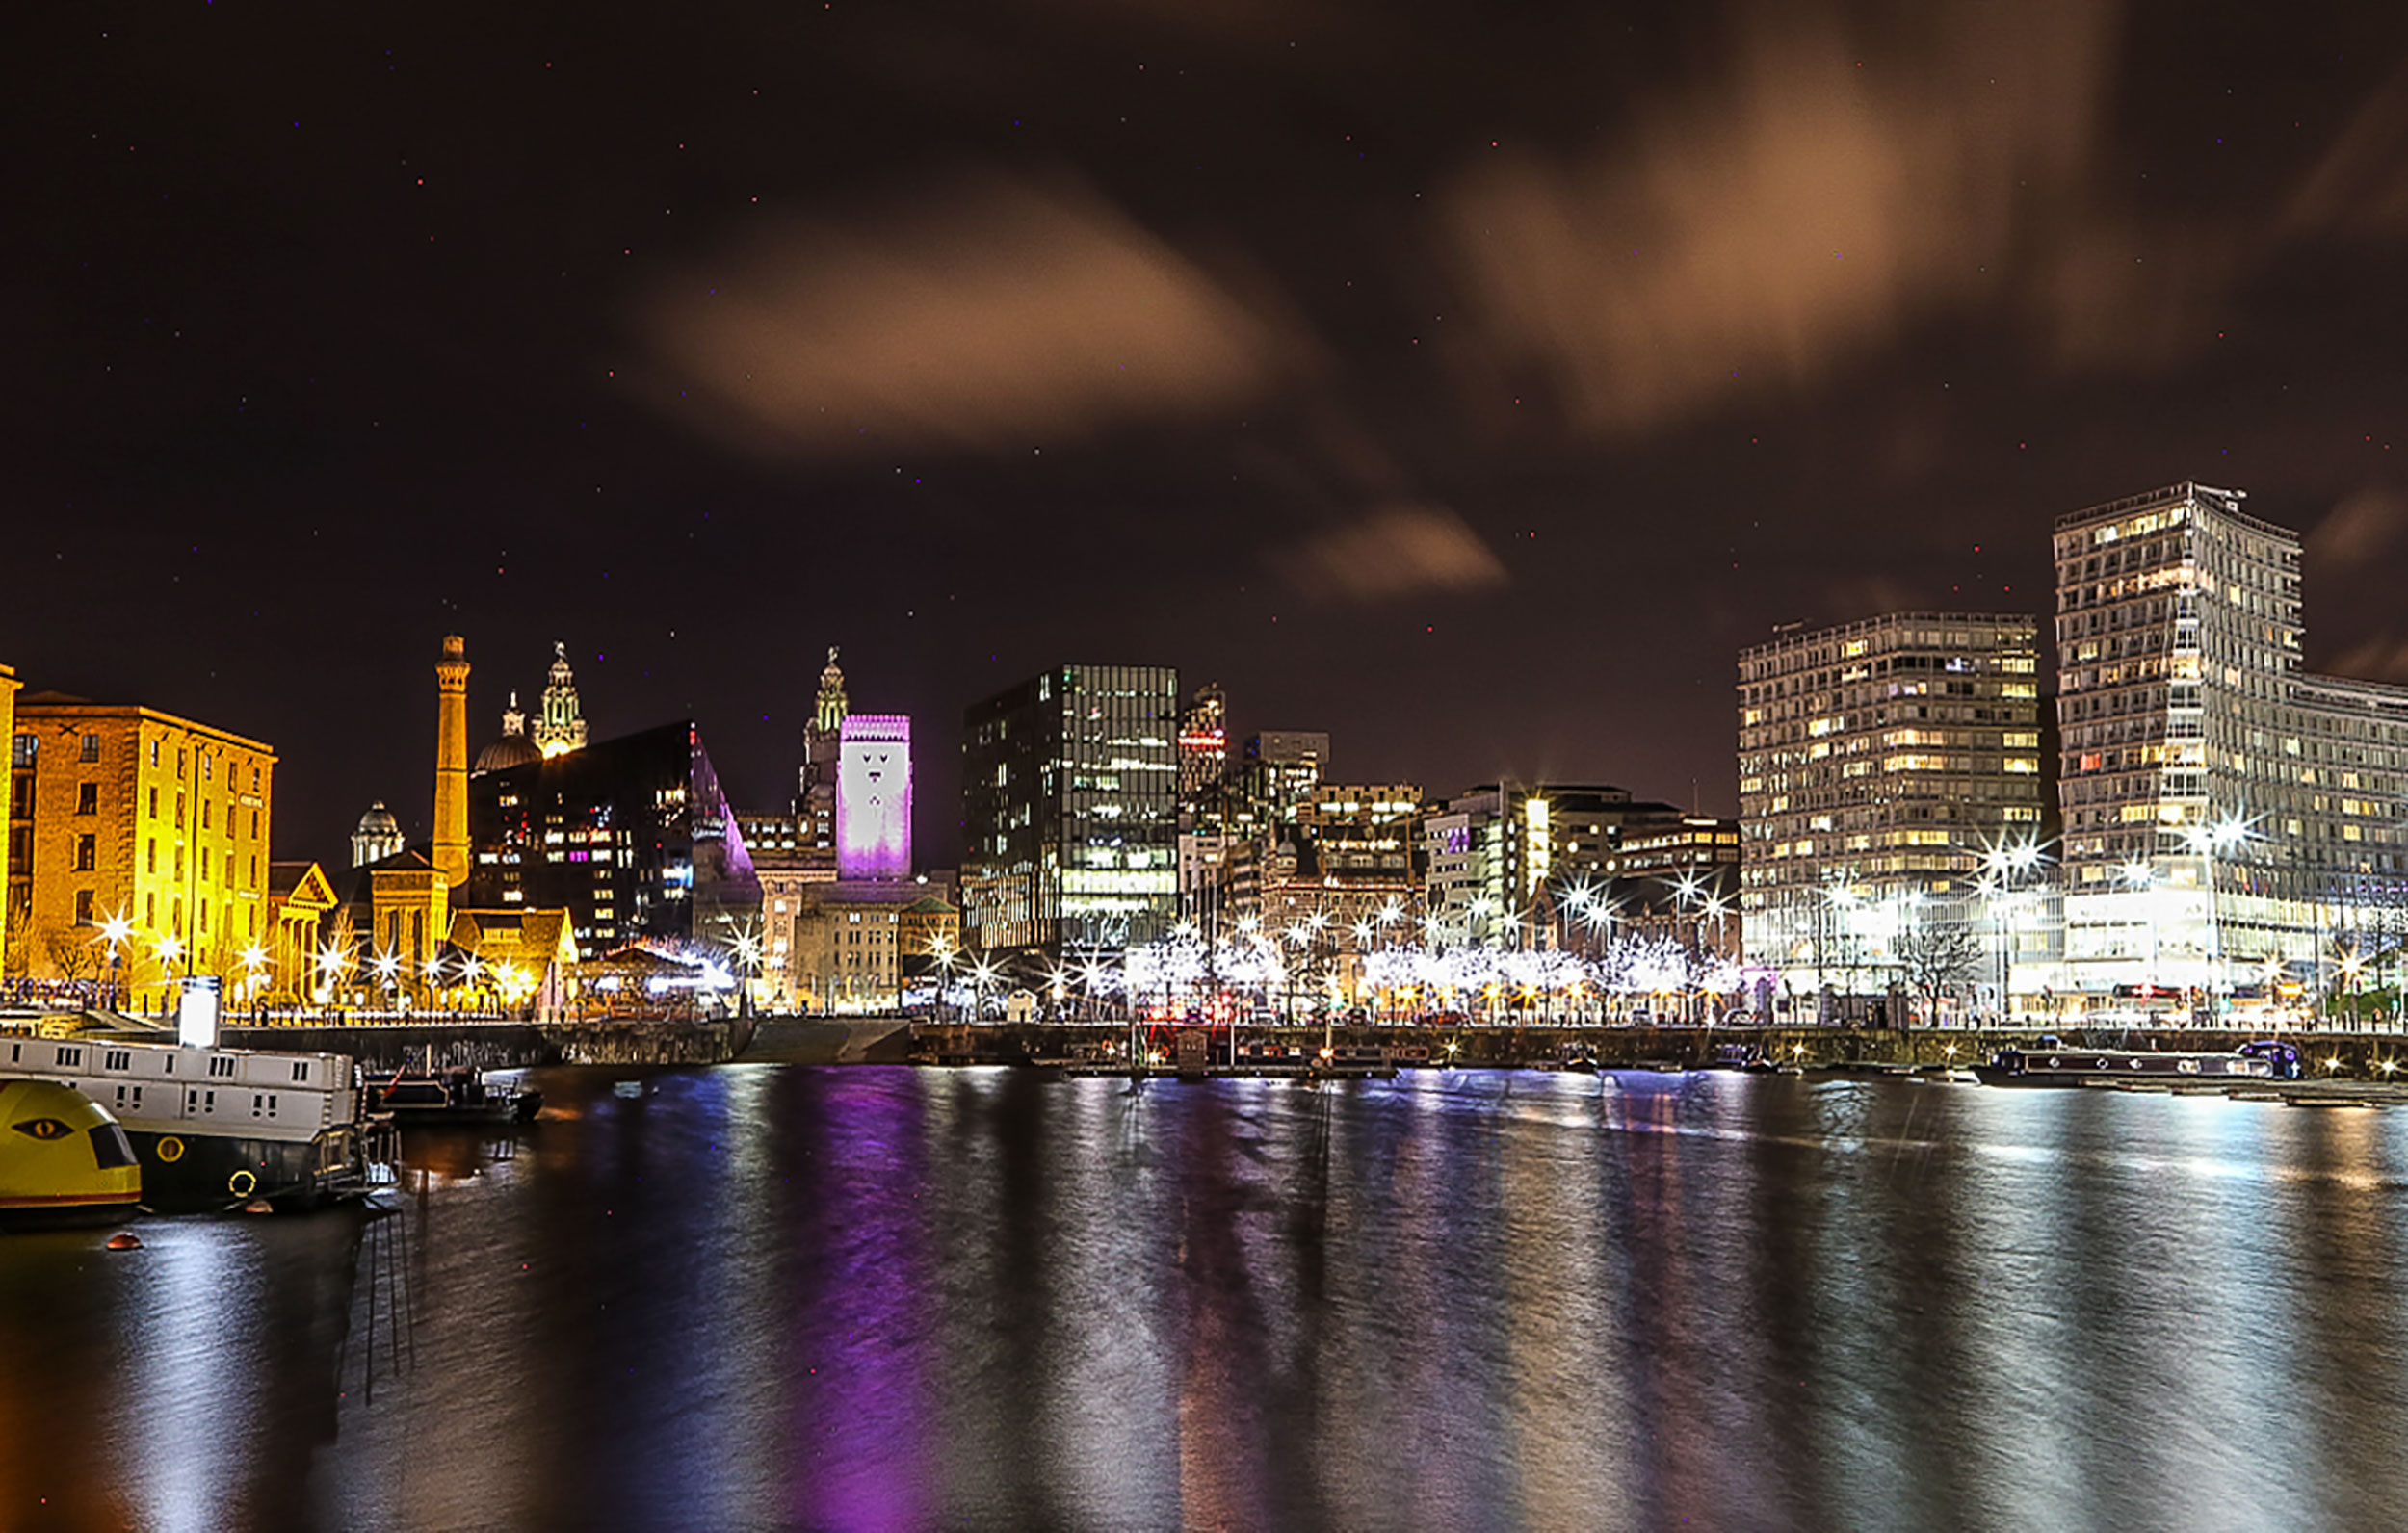 Urban-Liverpool-dock-night-2.jpg